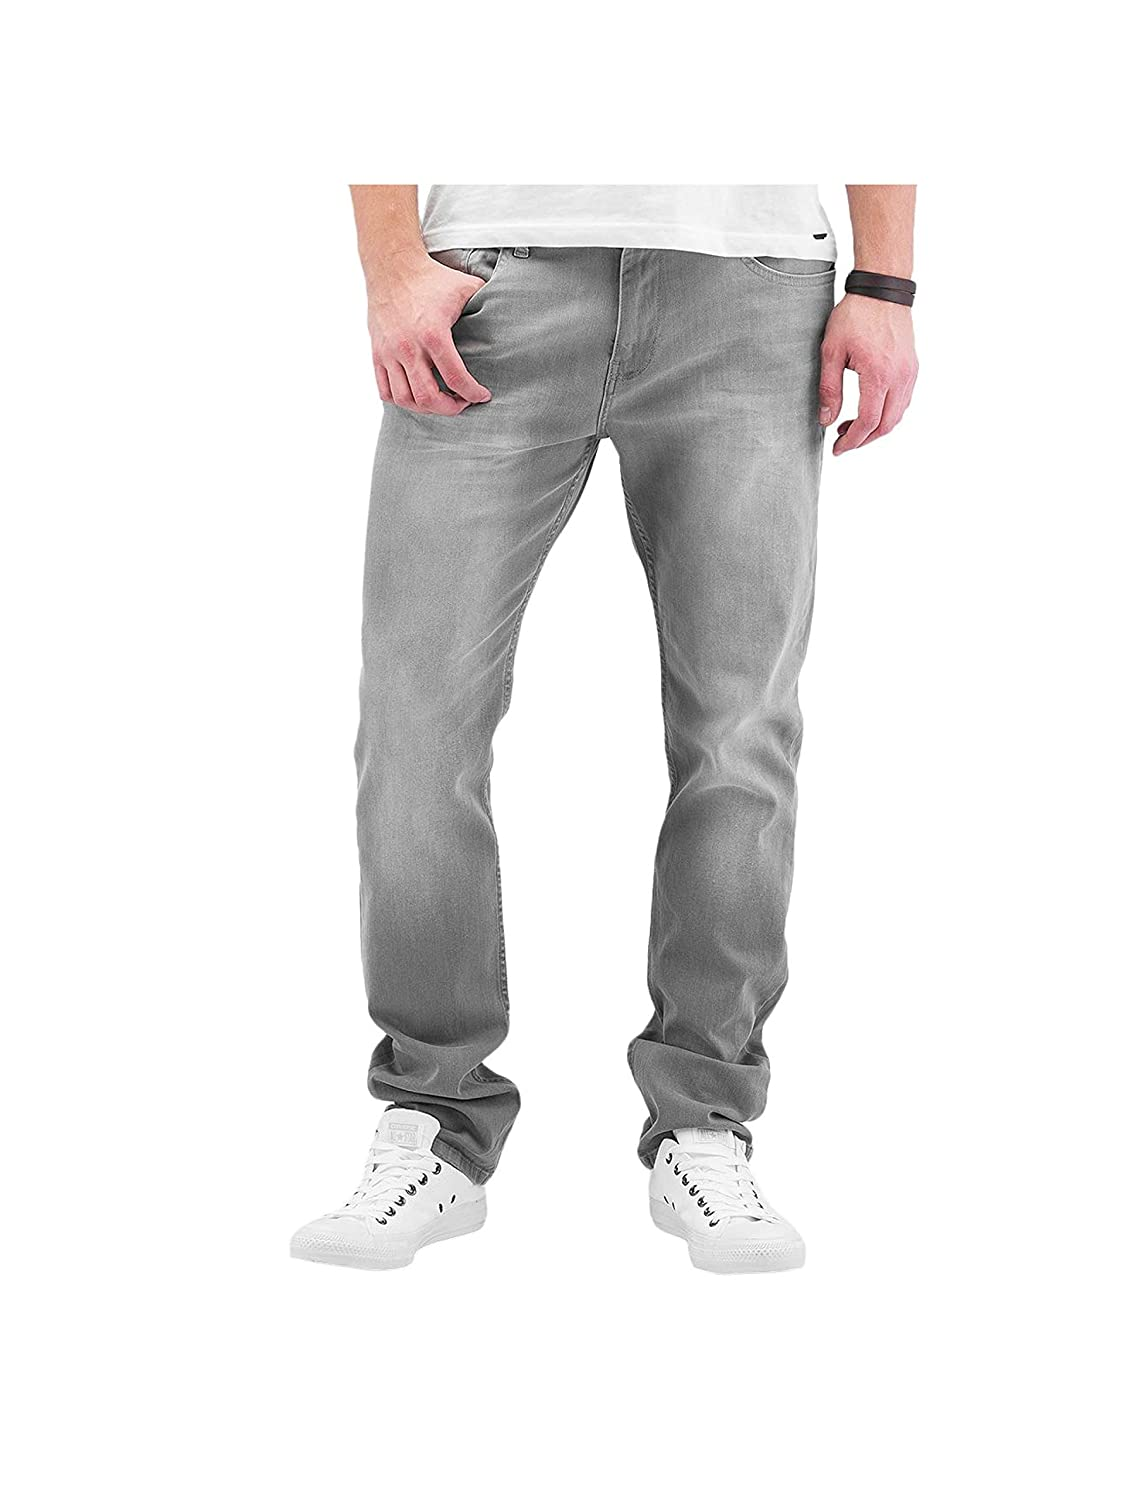 Petrol Industries Tommore Tommore Tommore Taperot Jeans B01D5CHAB6 Jeanshosen Einfacher Stil fc5e06